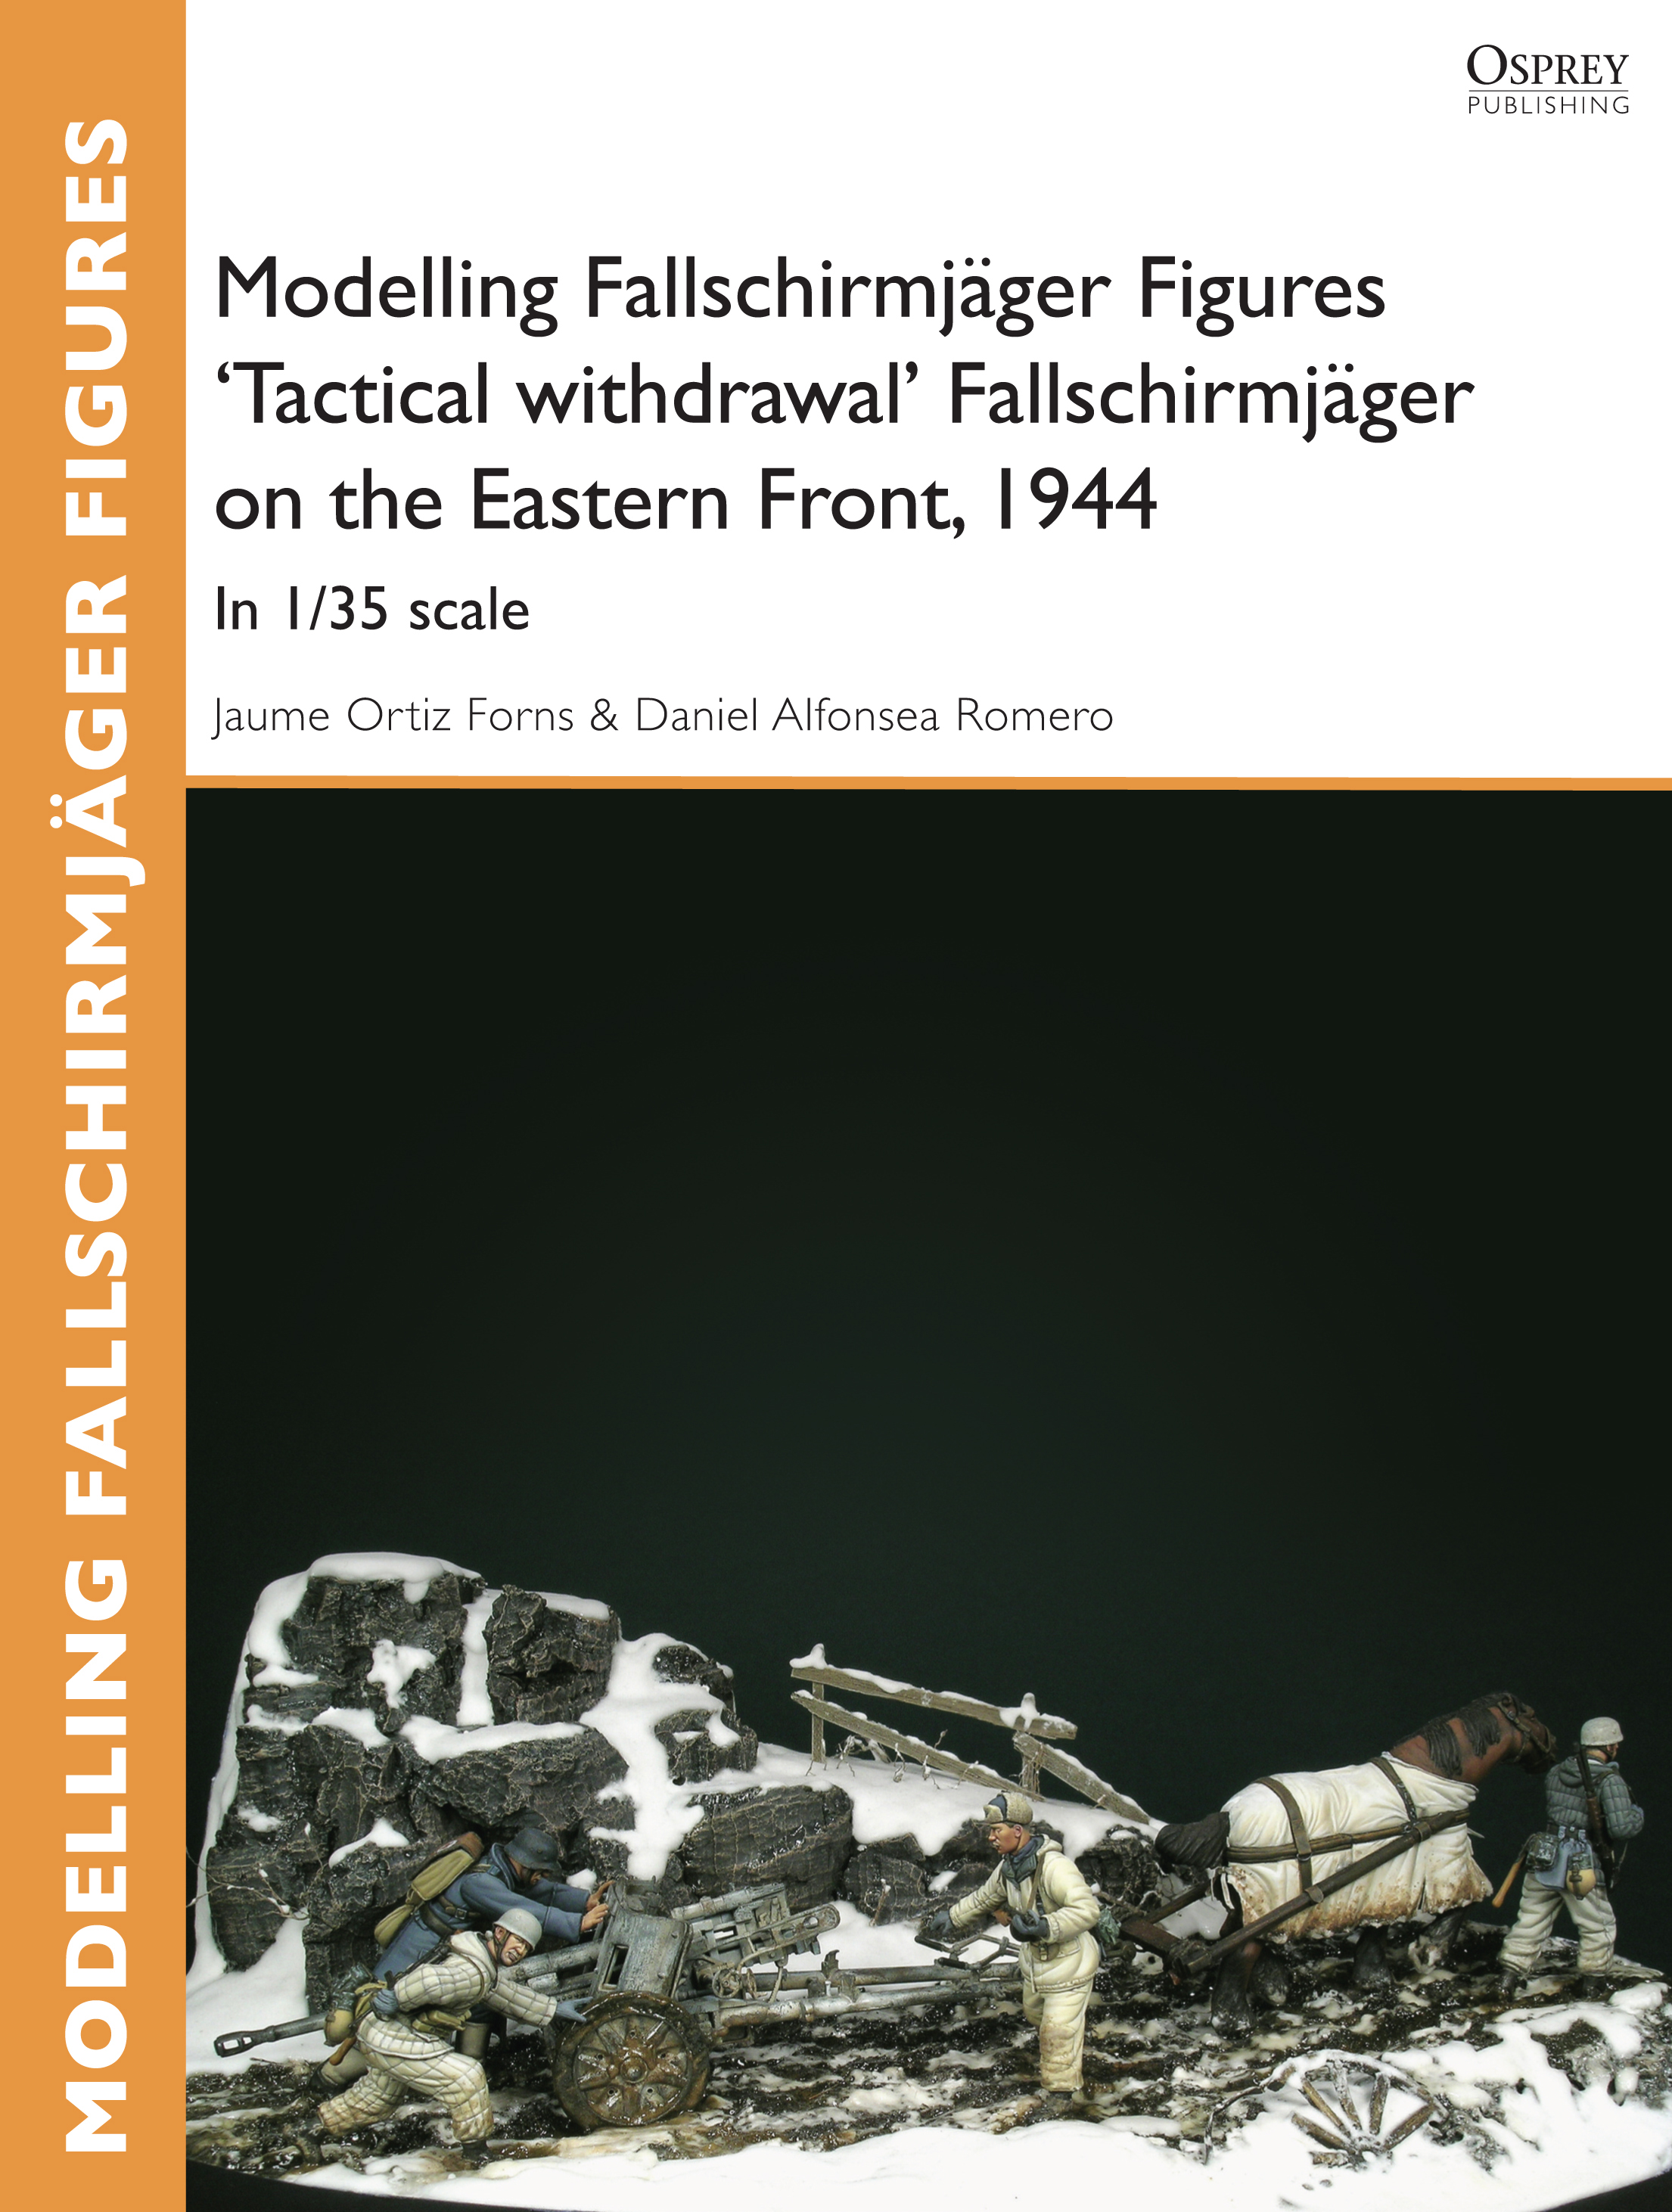 Modelling Fallschirmj�ger Figures 'Tactical withdrawl' Fallschirmj�ger on the Eastern Front,  1944: In 1/35 scale